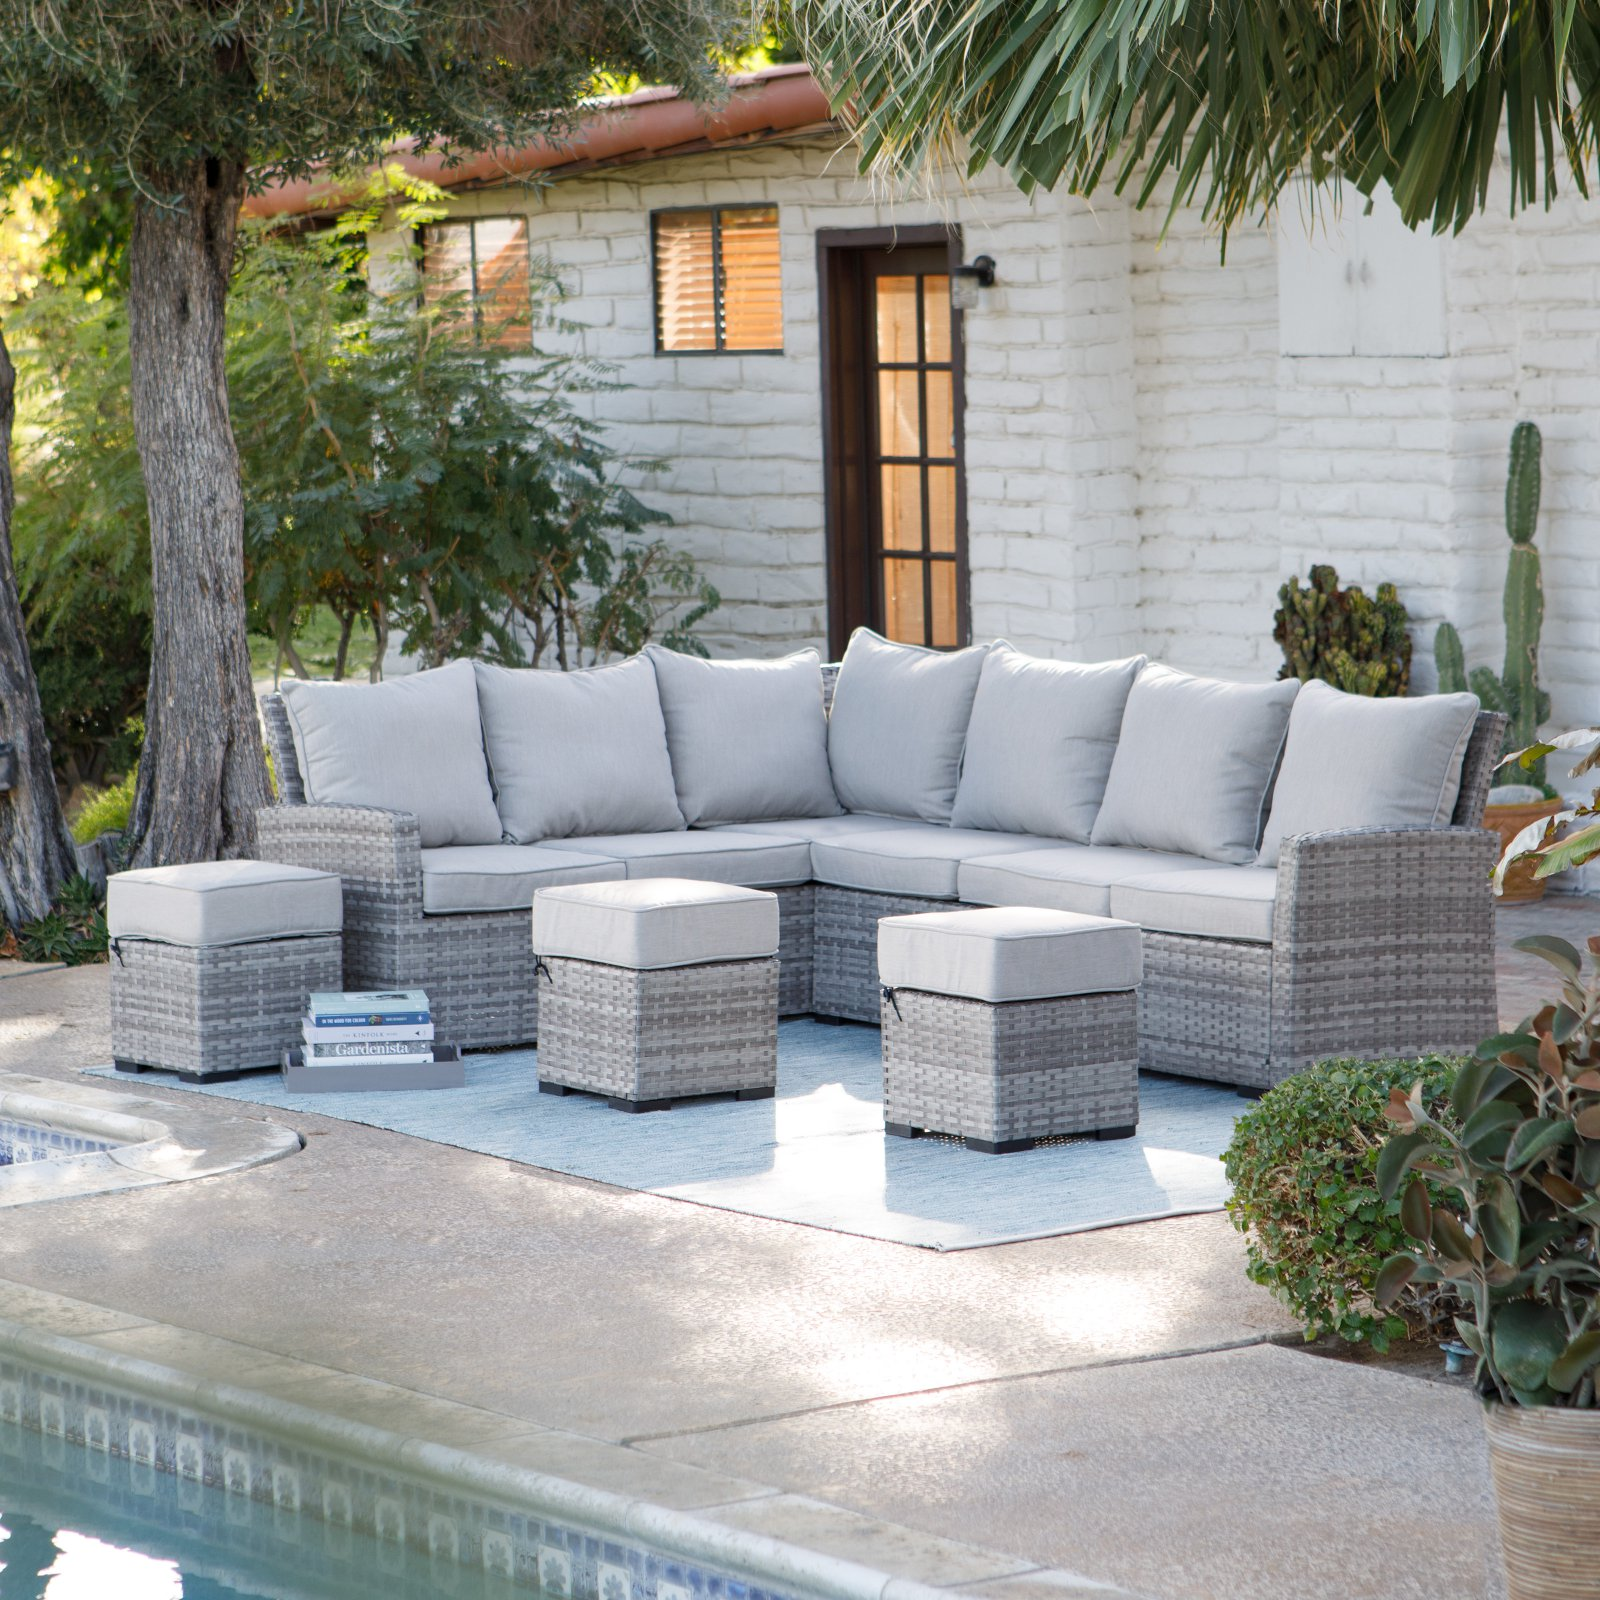 Belham Living Brookville All Weather Outdoor Wicker Sofa Sectional Set by Terrace Living Company LLC